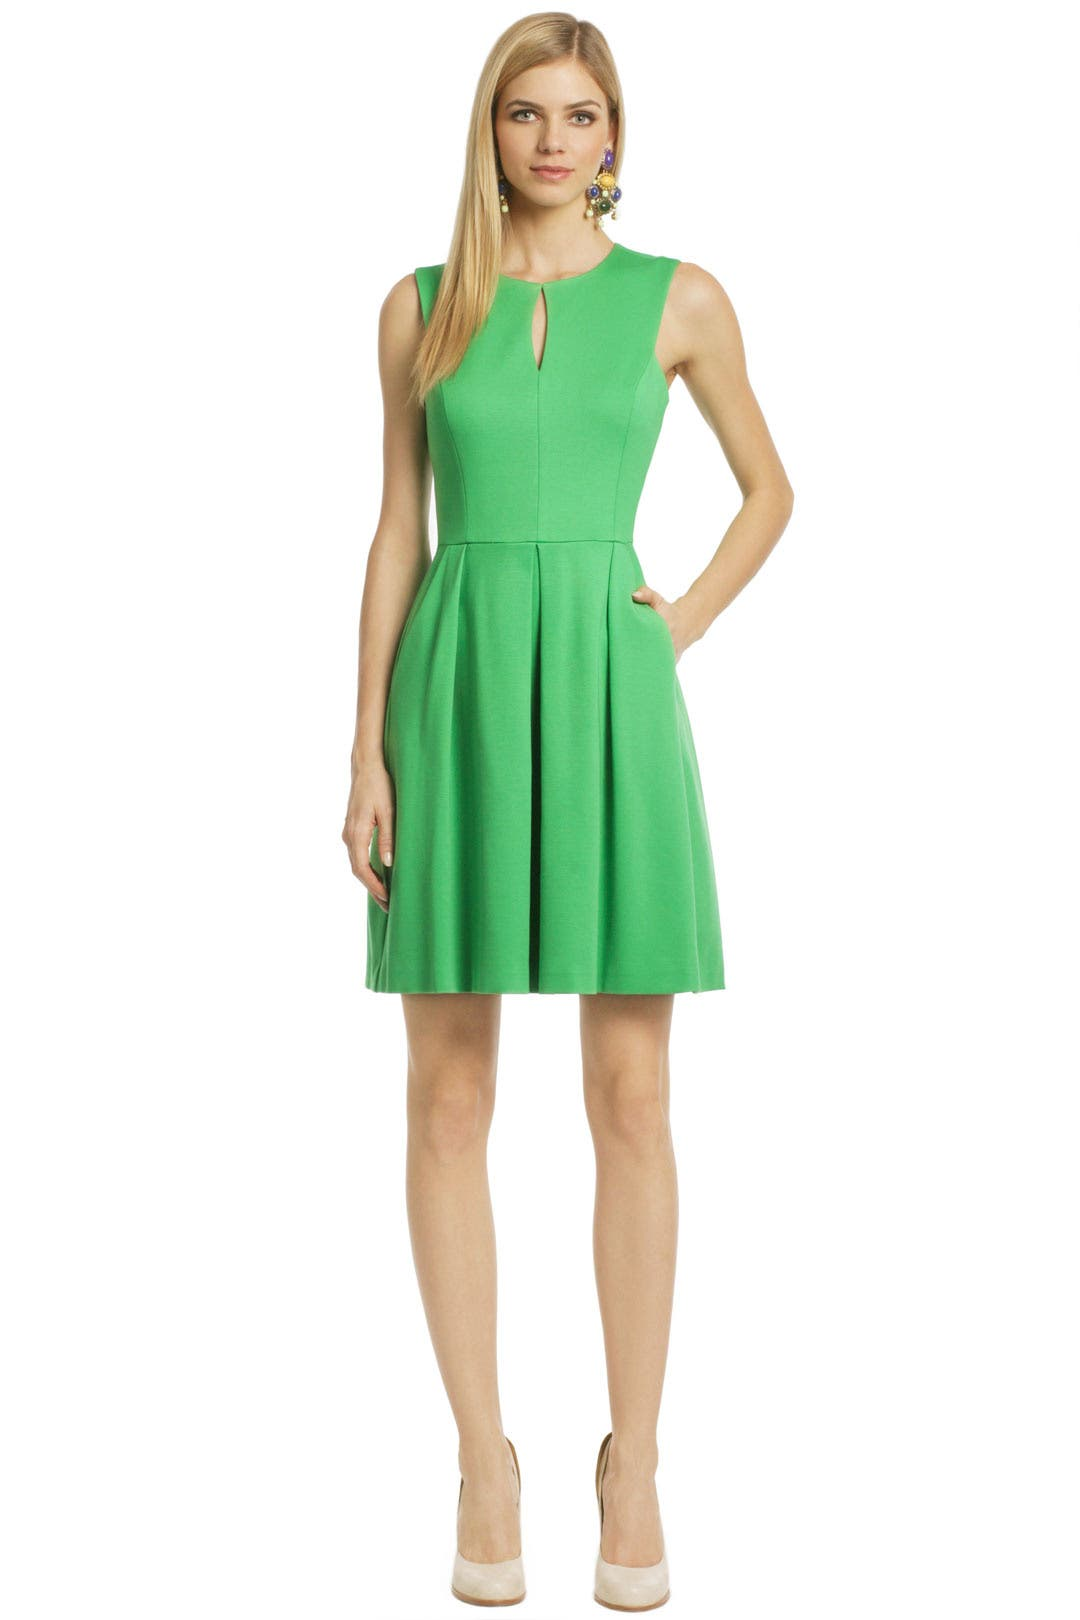 Kelly to my green dress by trina turk for 40 50 rent the runway ombrellifo Gallery